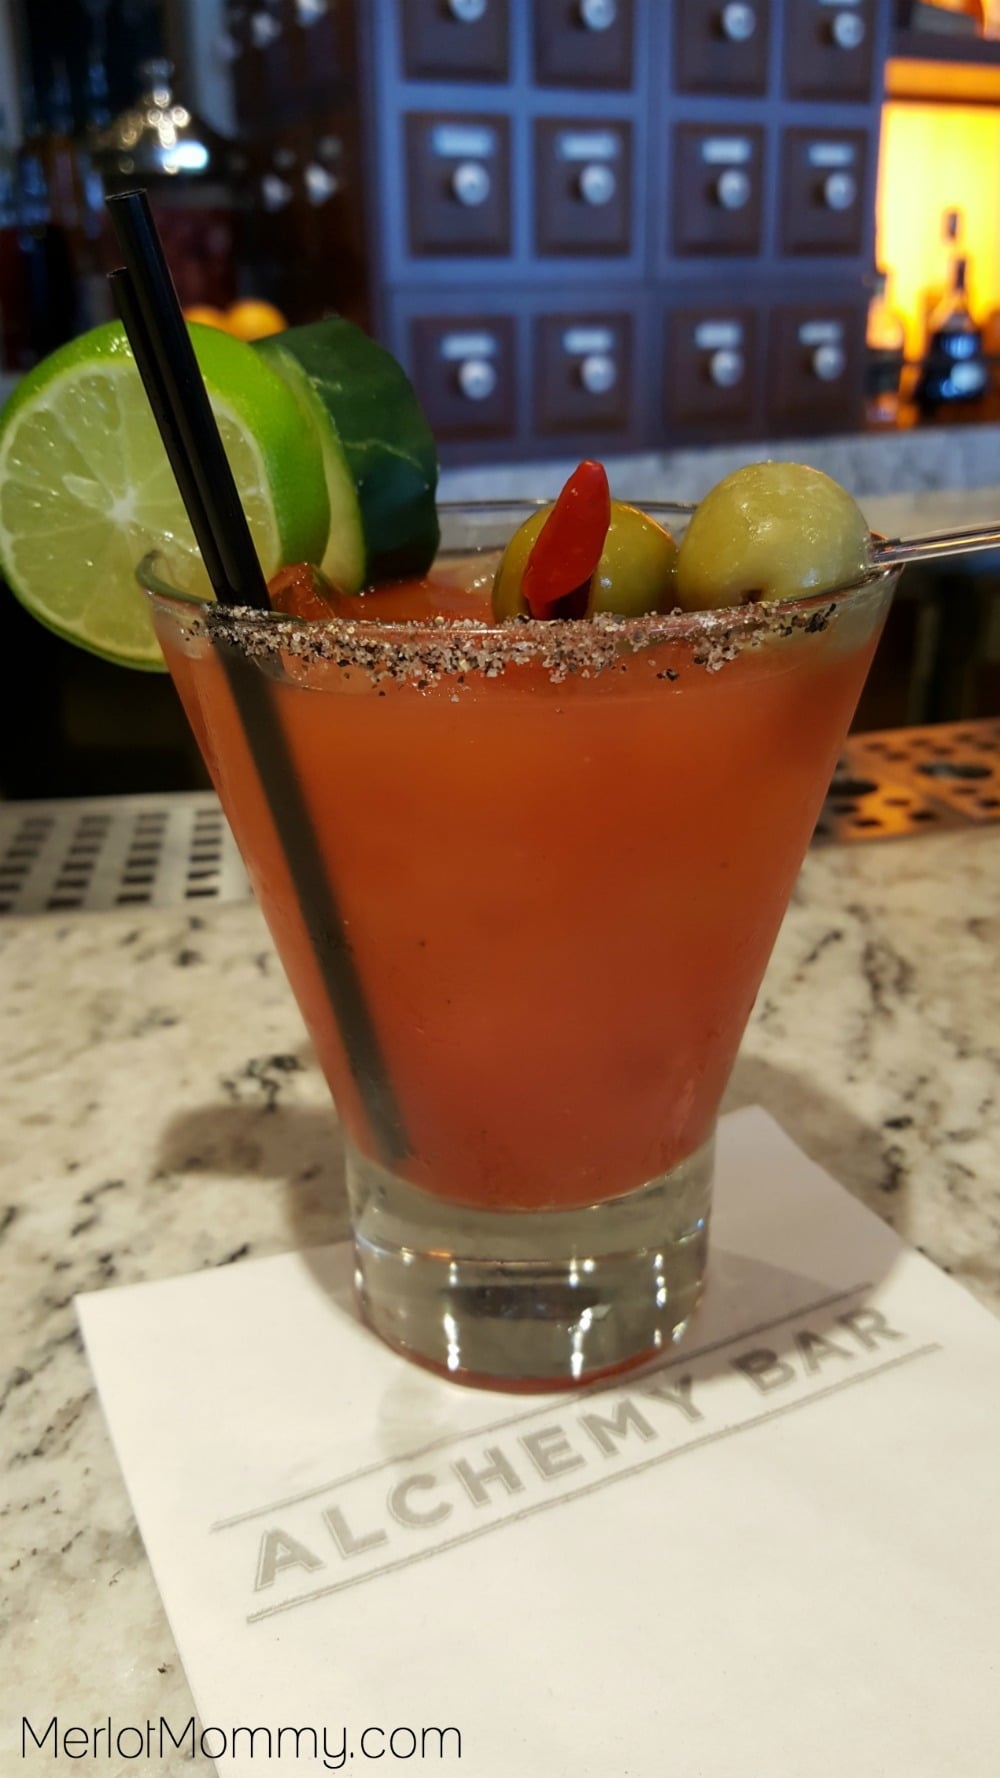 7 Things We Love About Carnival Cruises